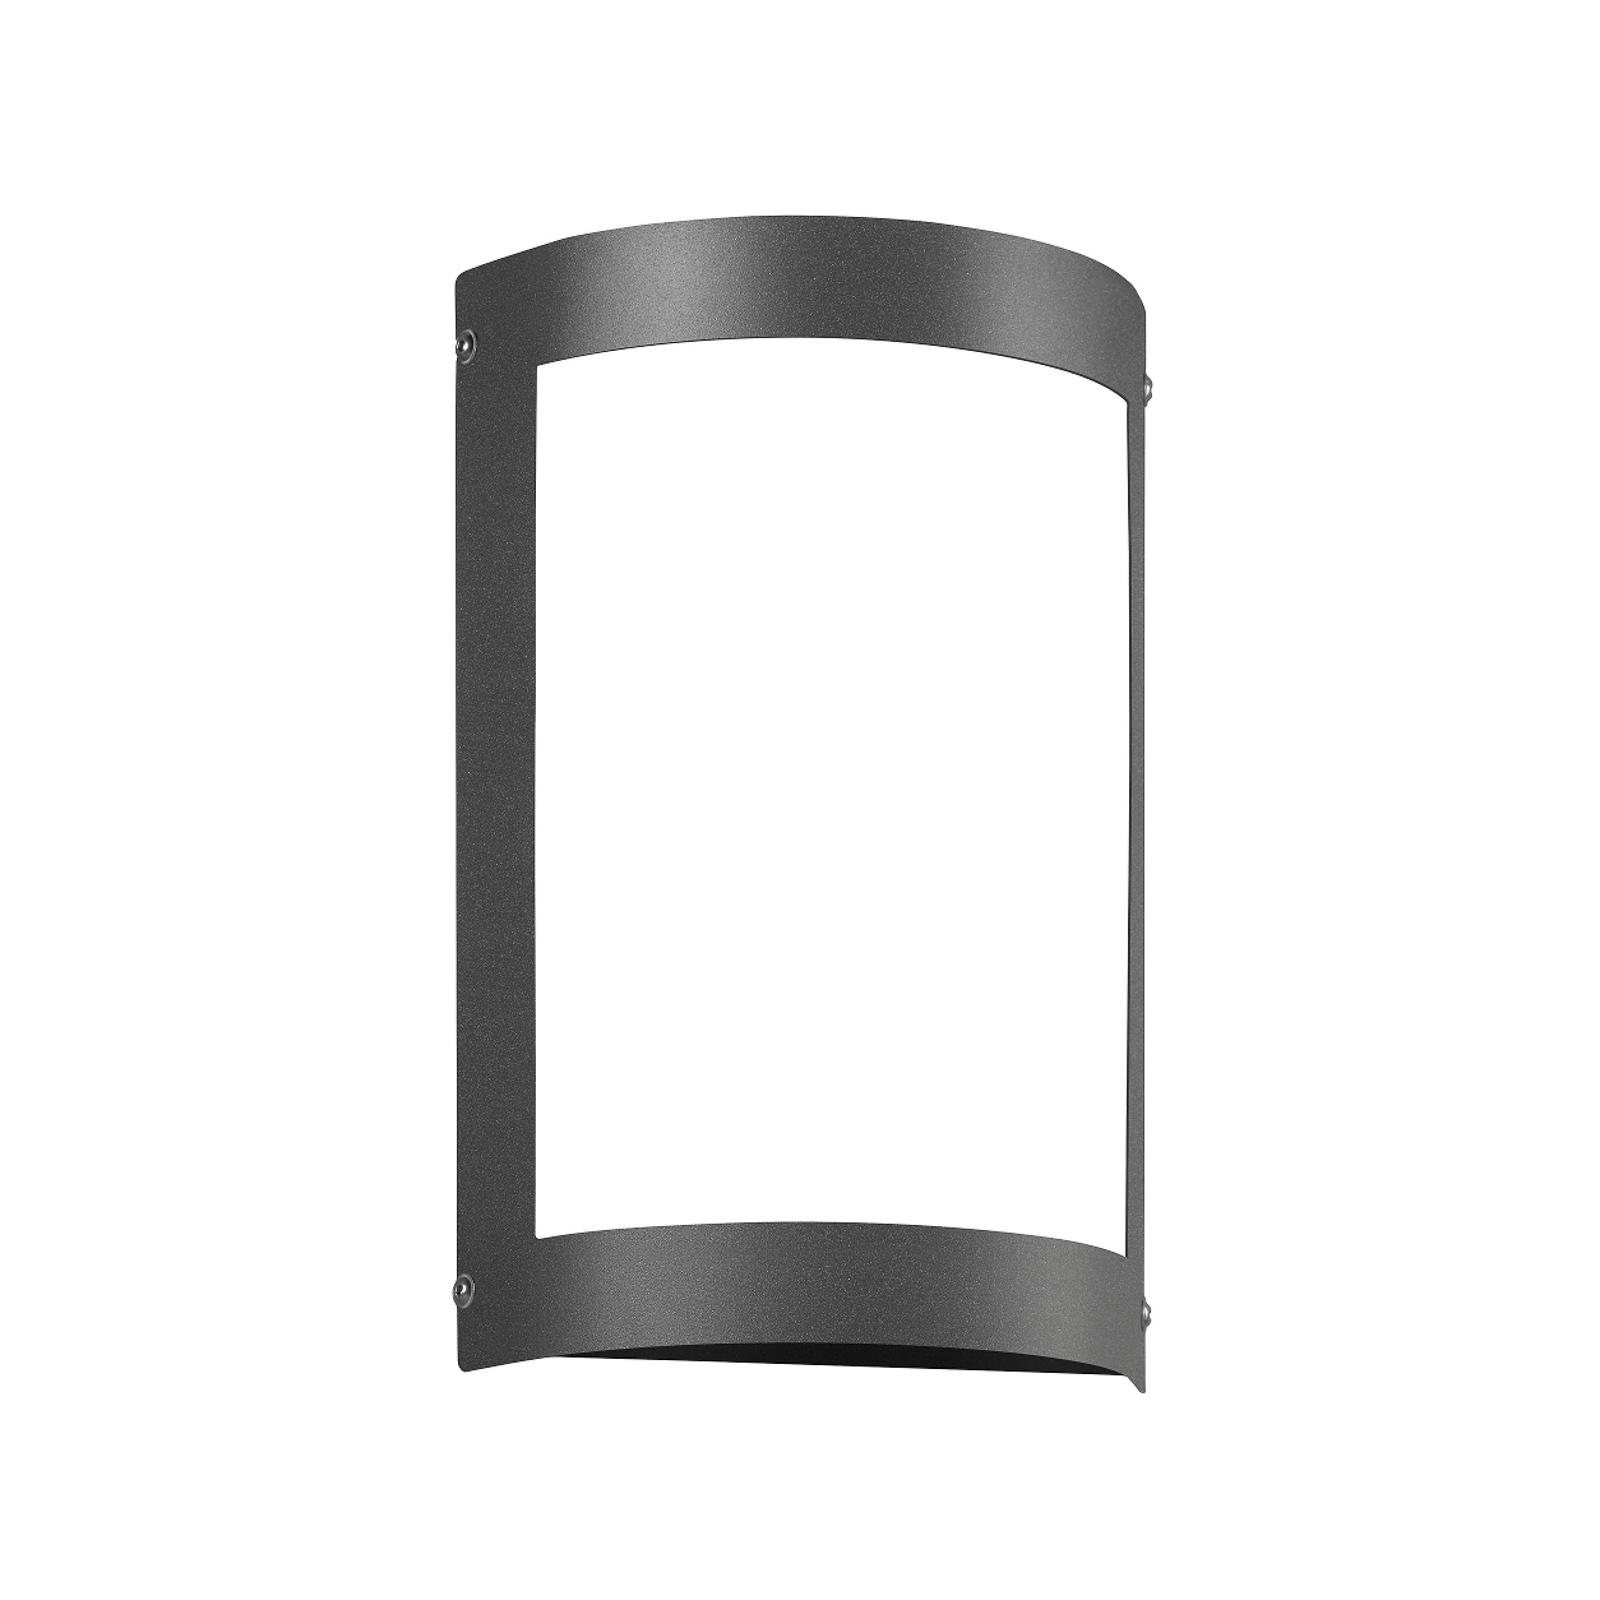 LED outdoor wall light Aqua Marco Anthracite 3_2011219_1